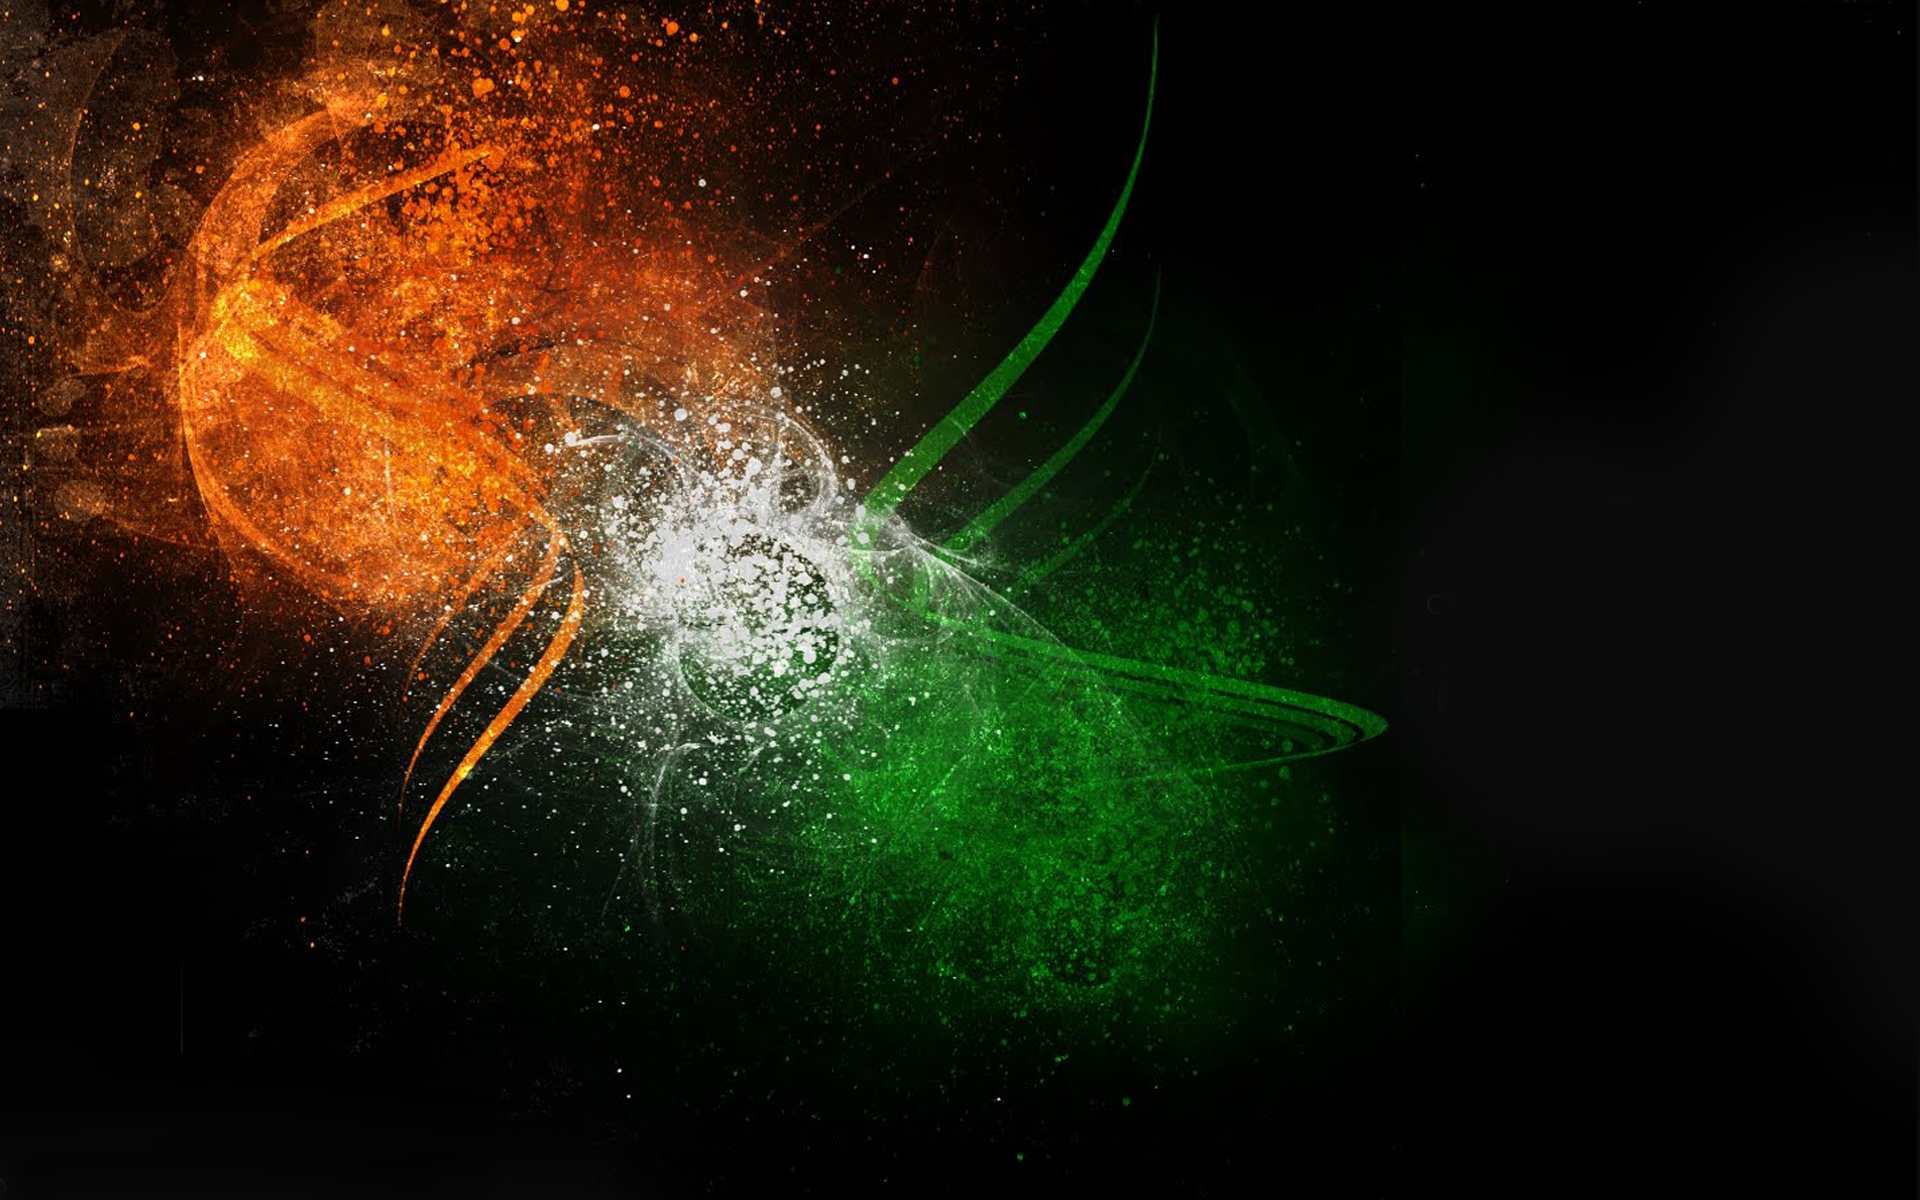 HD India Wallpapers - The Best And The Most Attractive ...